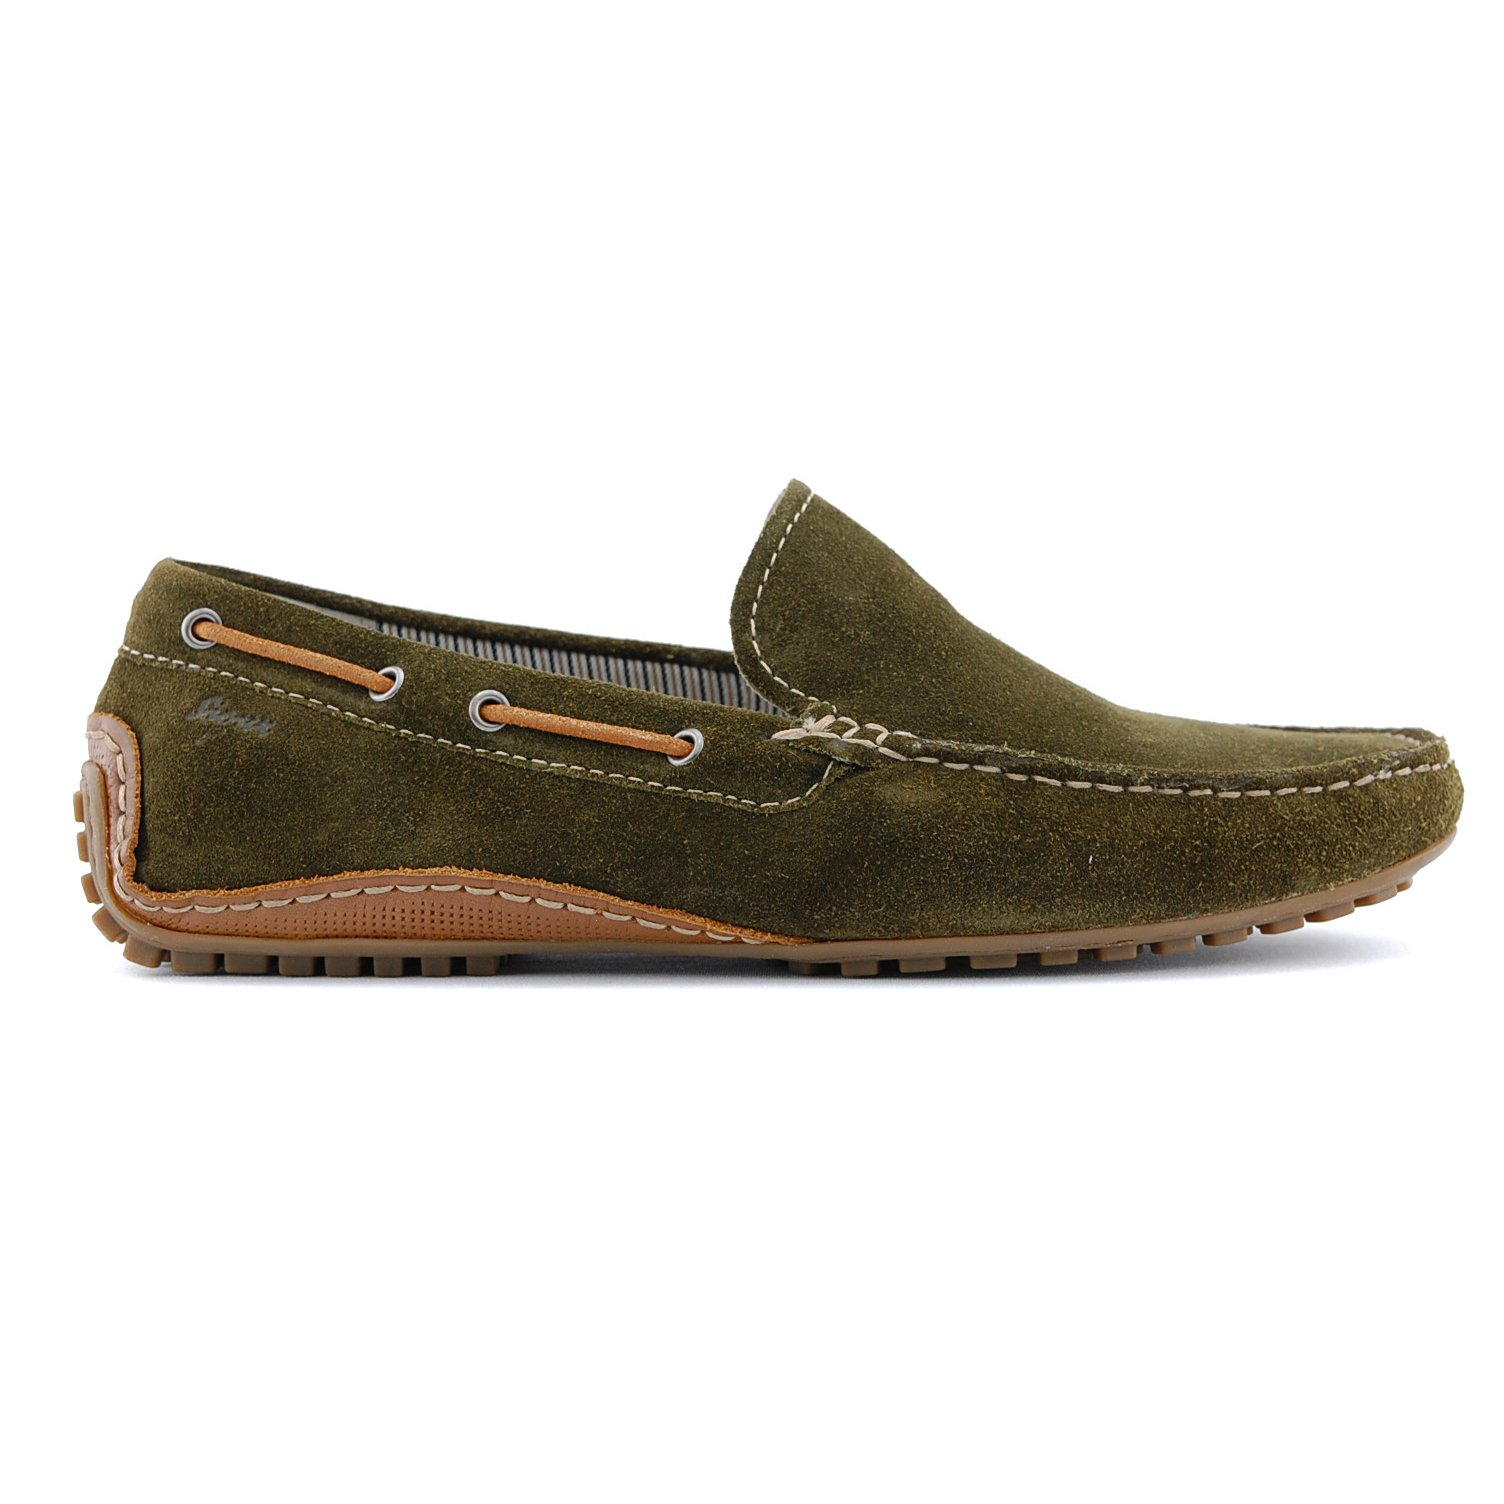 34719 Callimo instapper moccasian grijs suede